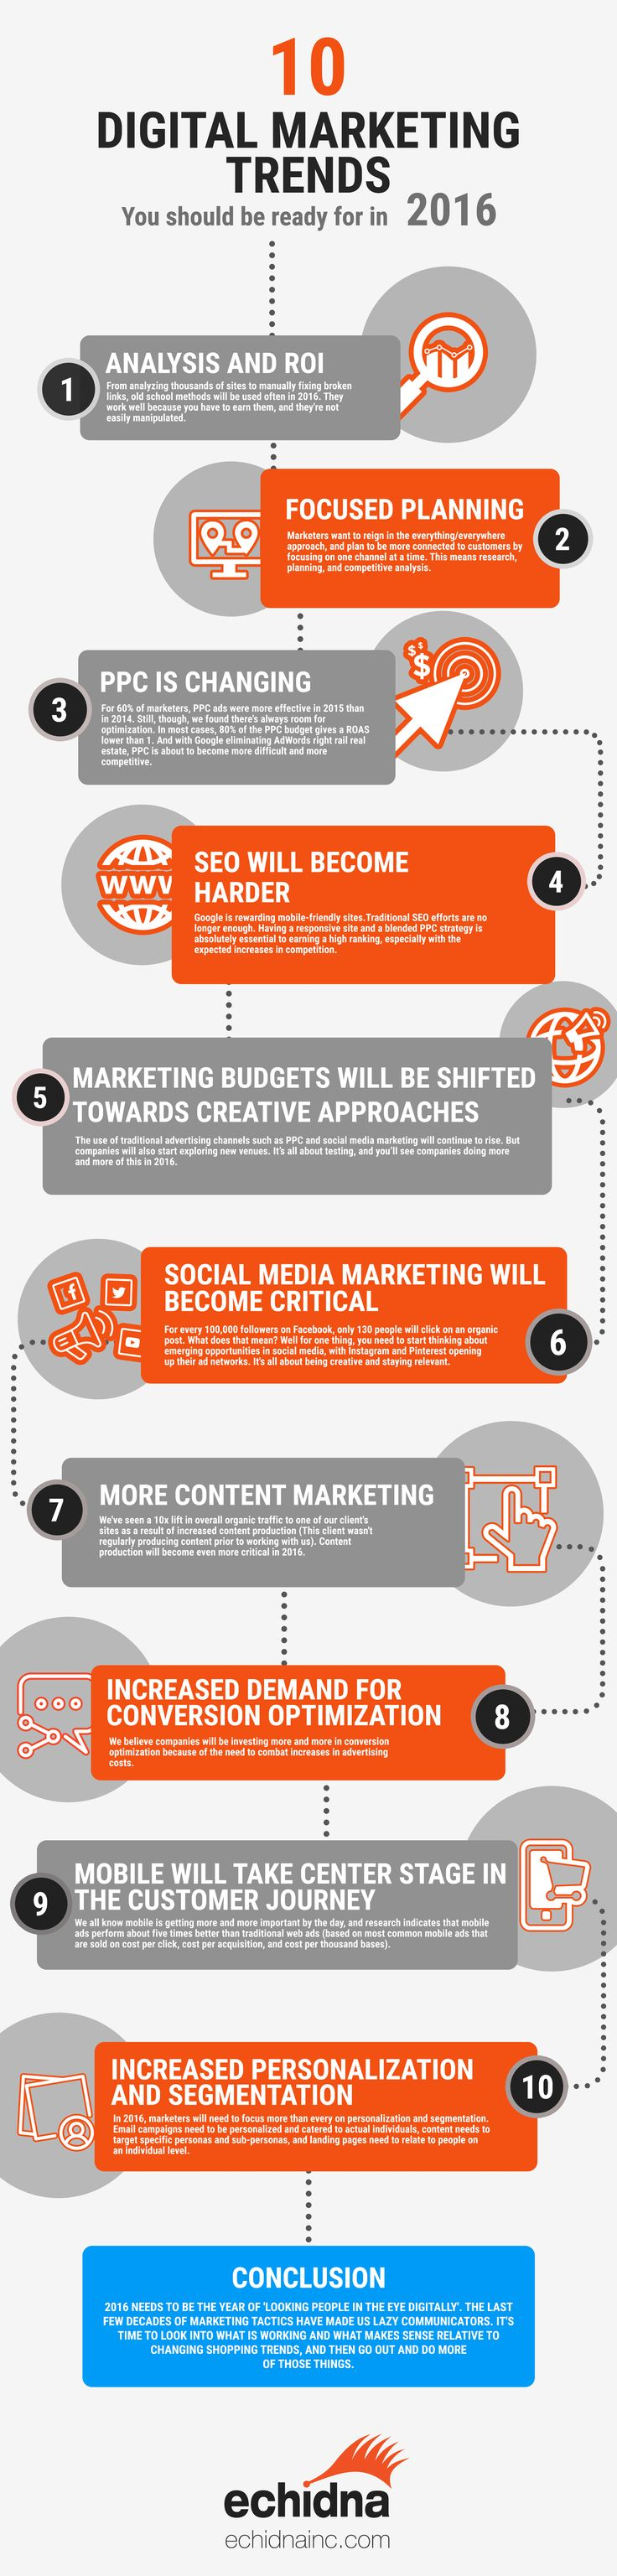 10 Digital Marketing Trends to Look for in 2016 #Infographic #Marketing #Trends #DigitalMarketing